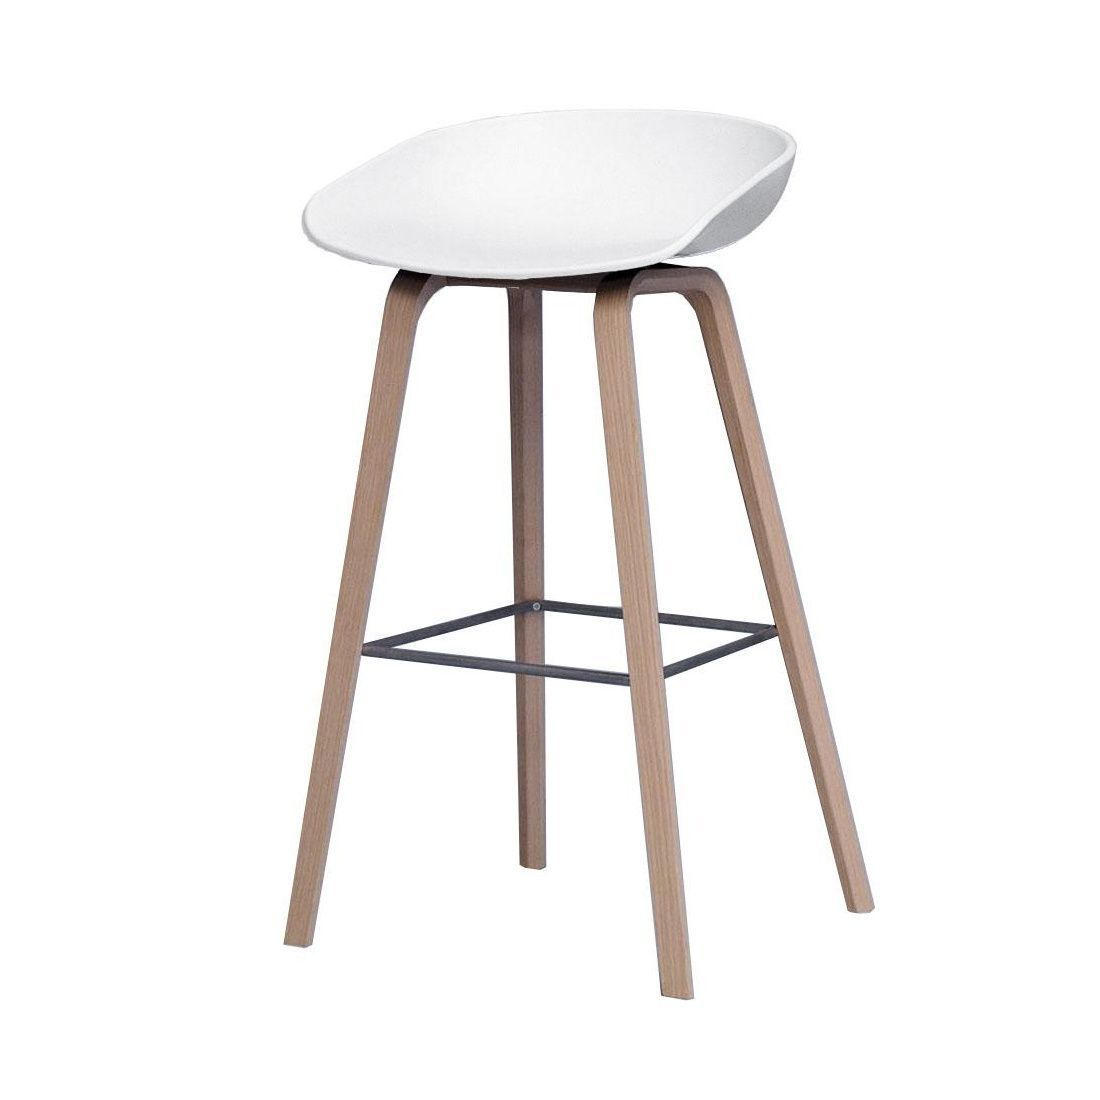 Barhocker Design About A Stool Aas32 Barhocker 65cm Hay Ambientedirect